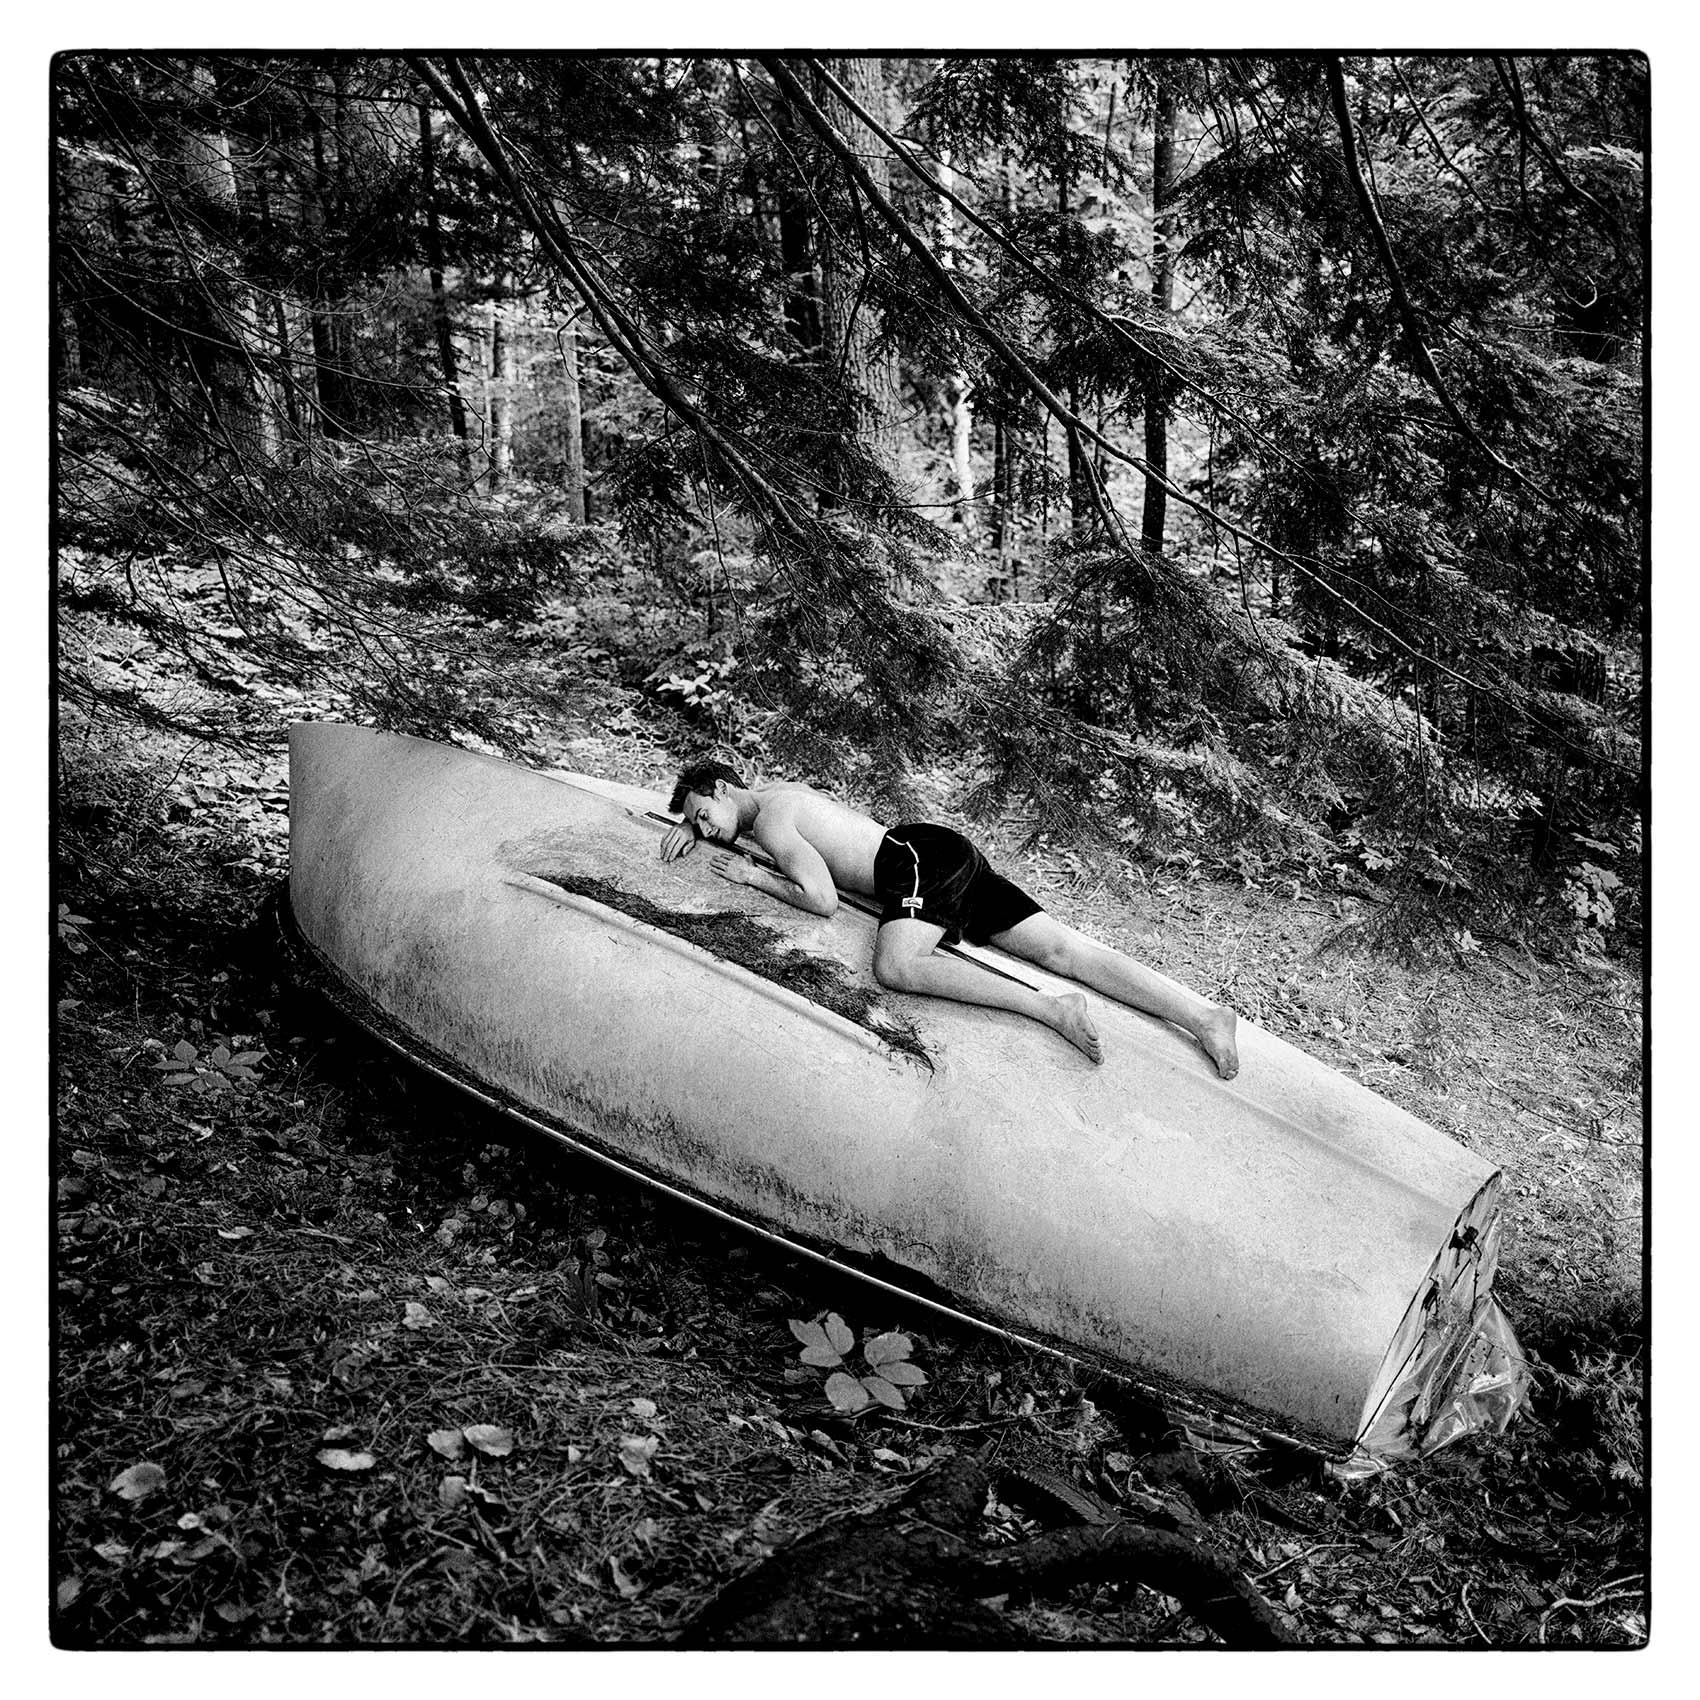 a-man-lays-on-top-of-an-overturned-sailboat-in-the-sun-at-his-cottage-in-northern-ontario